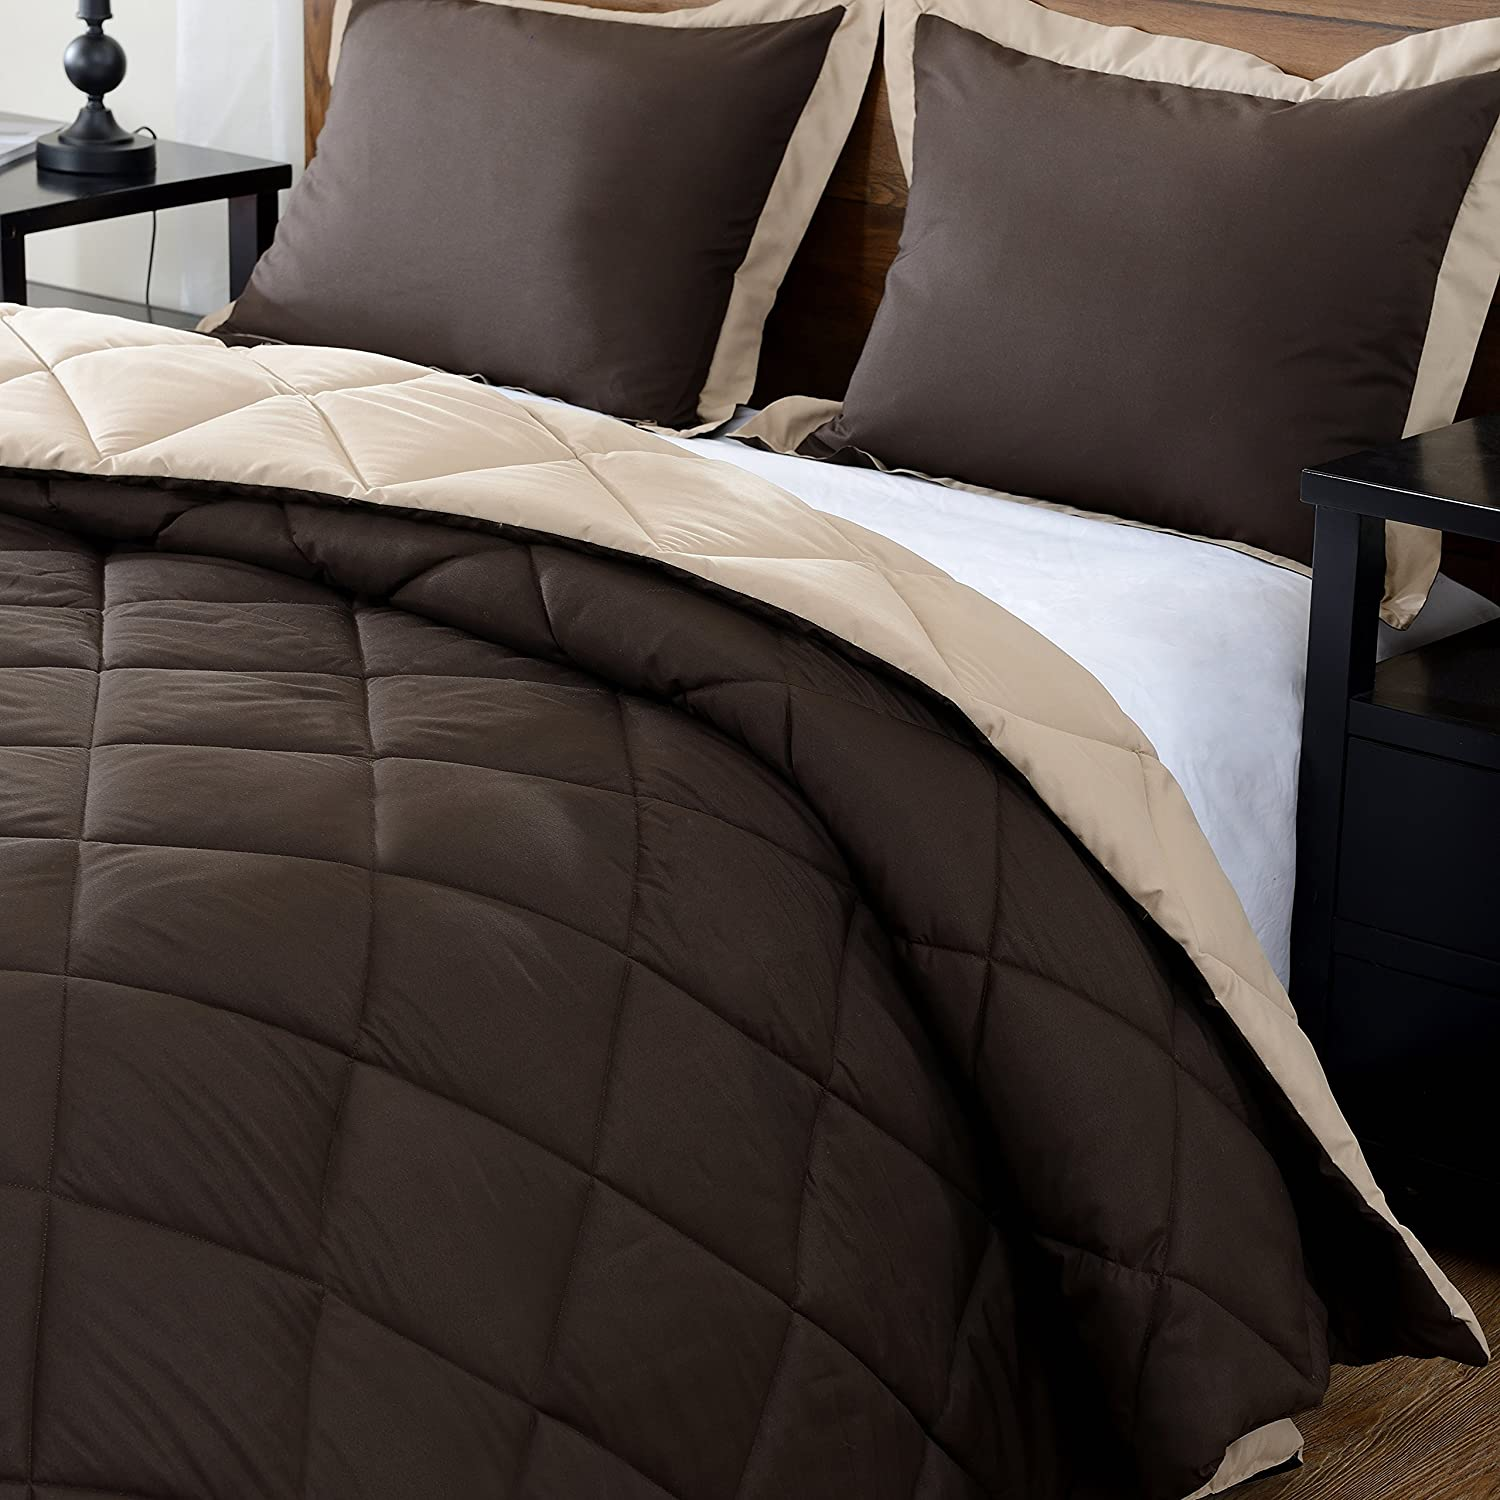 3-Piece Set - Brown and Tan - Down Alternative Reversible Comforter Size:Queen Color:Spanish Brown/Chatham Tan